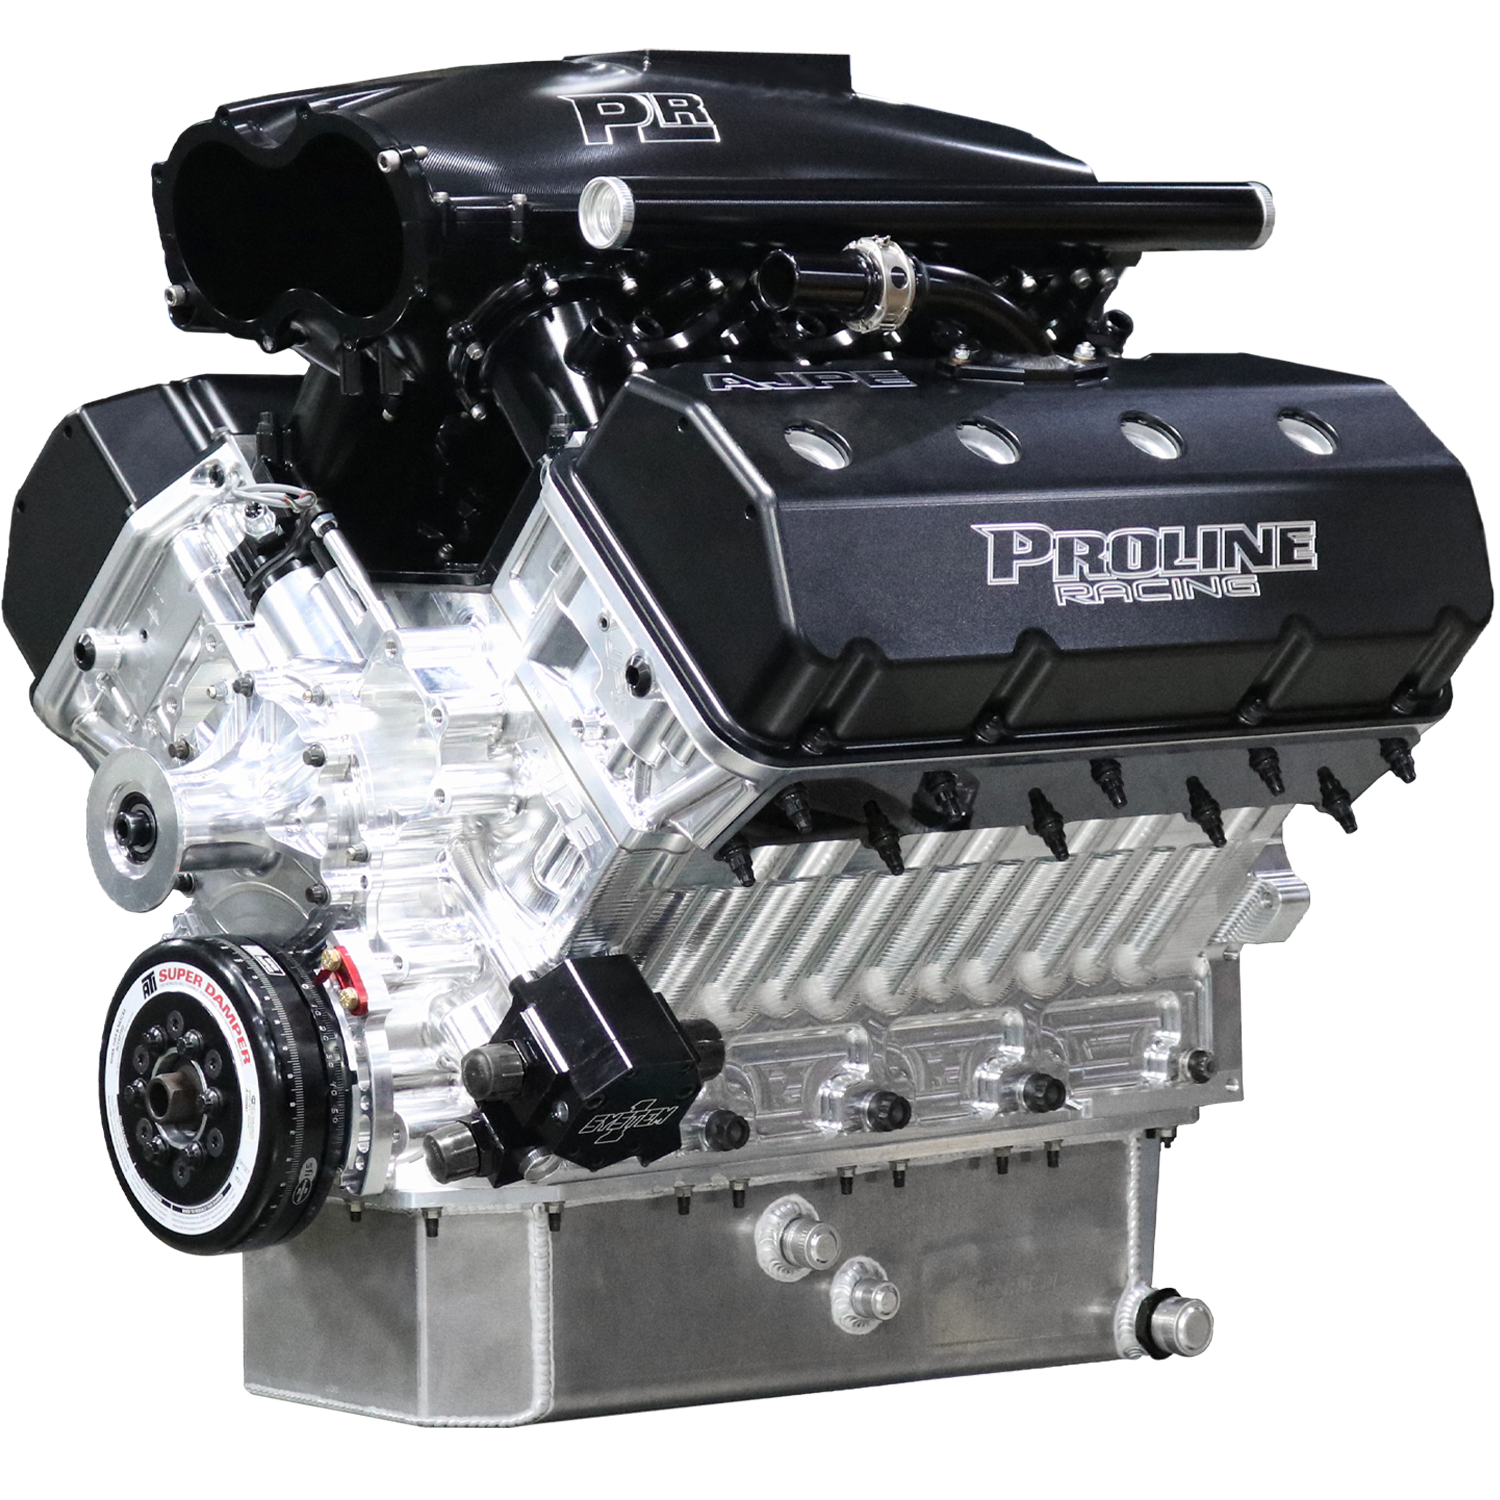 More 5/21 Love: Let's Talk About Multi-Thousand Horsepower 521ci Drag Racing Hemi Engines!